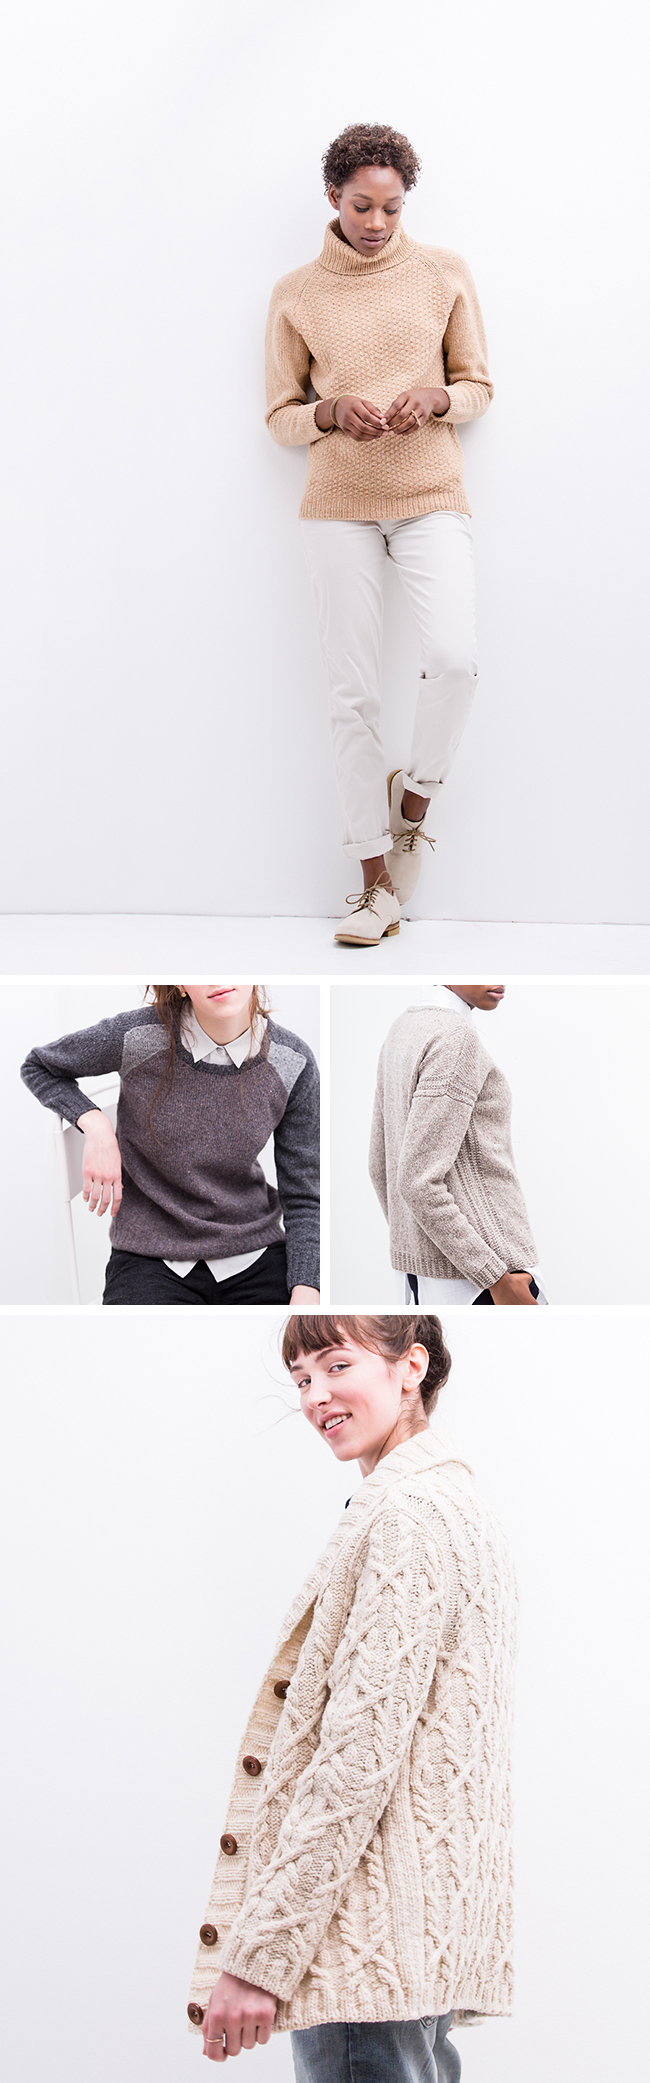 New Favorites: Welcome basics, part 1